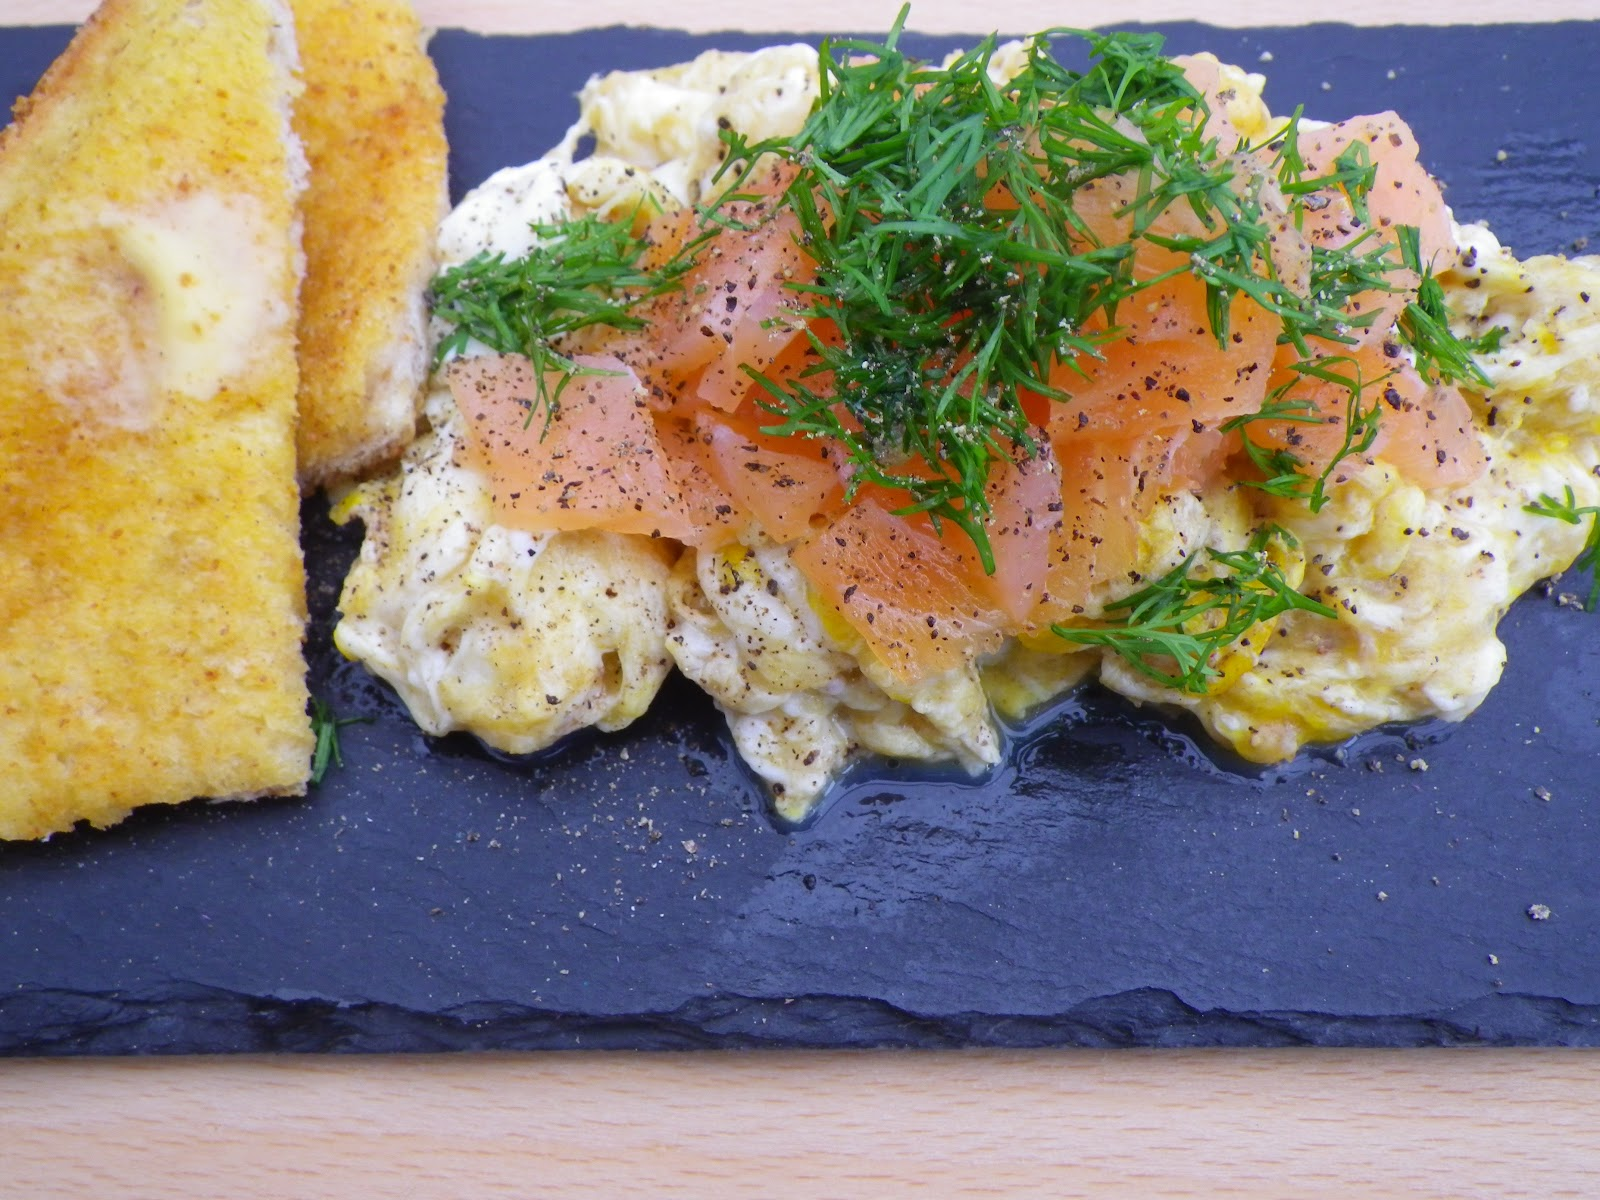 Fathers' Day Breakfast - Scrambled Eggs with Smoked Salmon & Dill